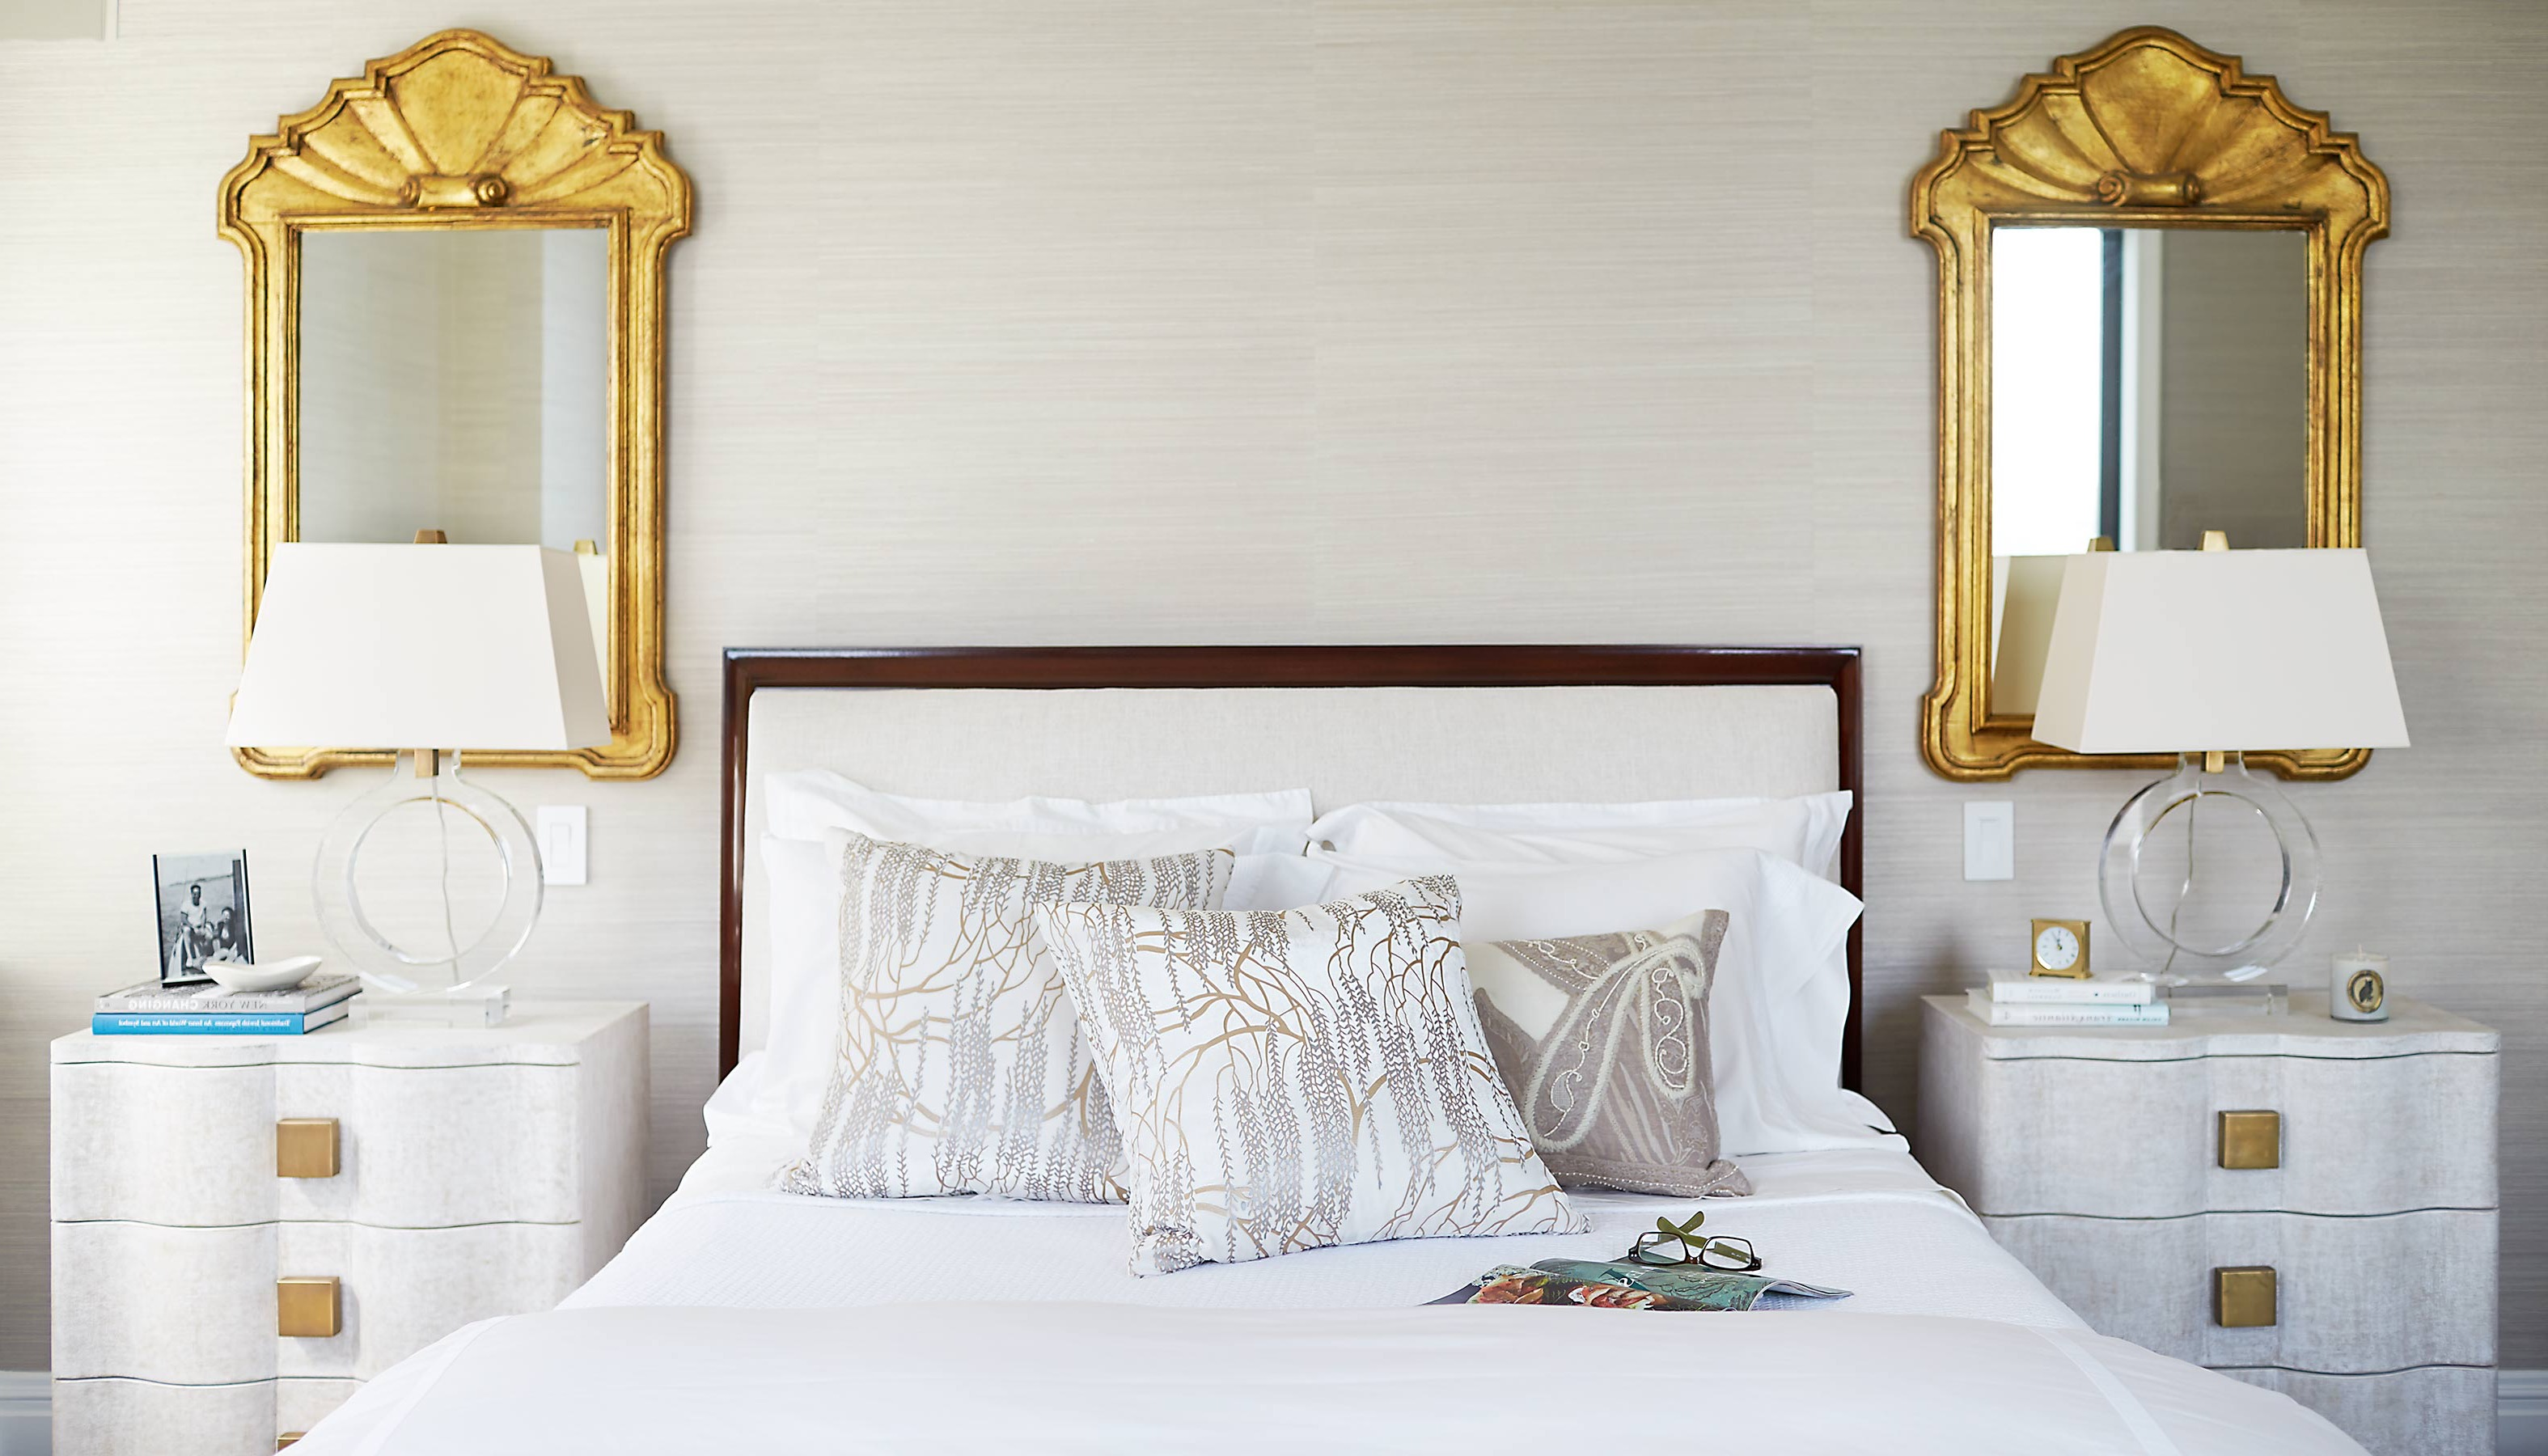 Pair Of Classic Gold Mirrors Placement For Modern Bedroom Design (Image 17 of 20)